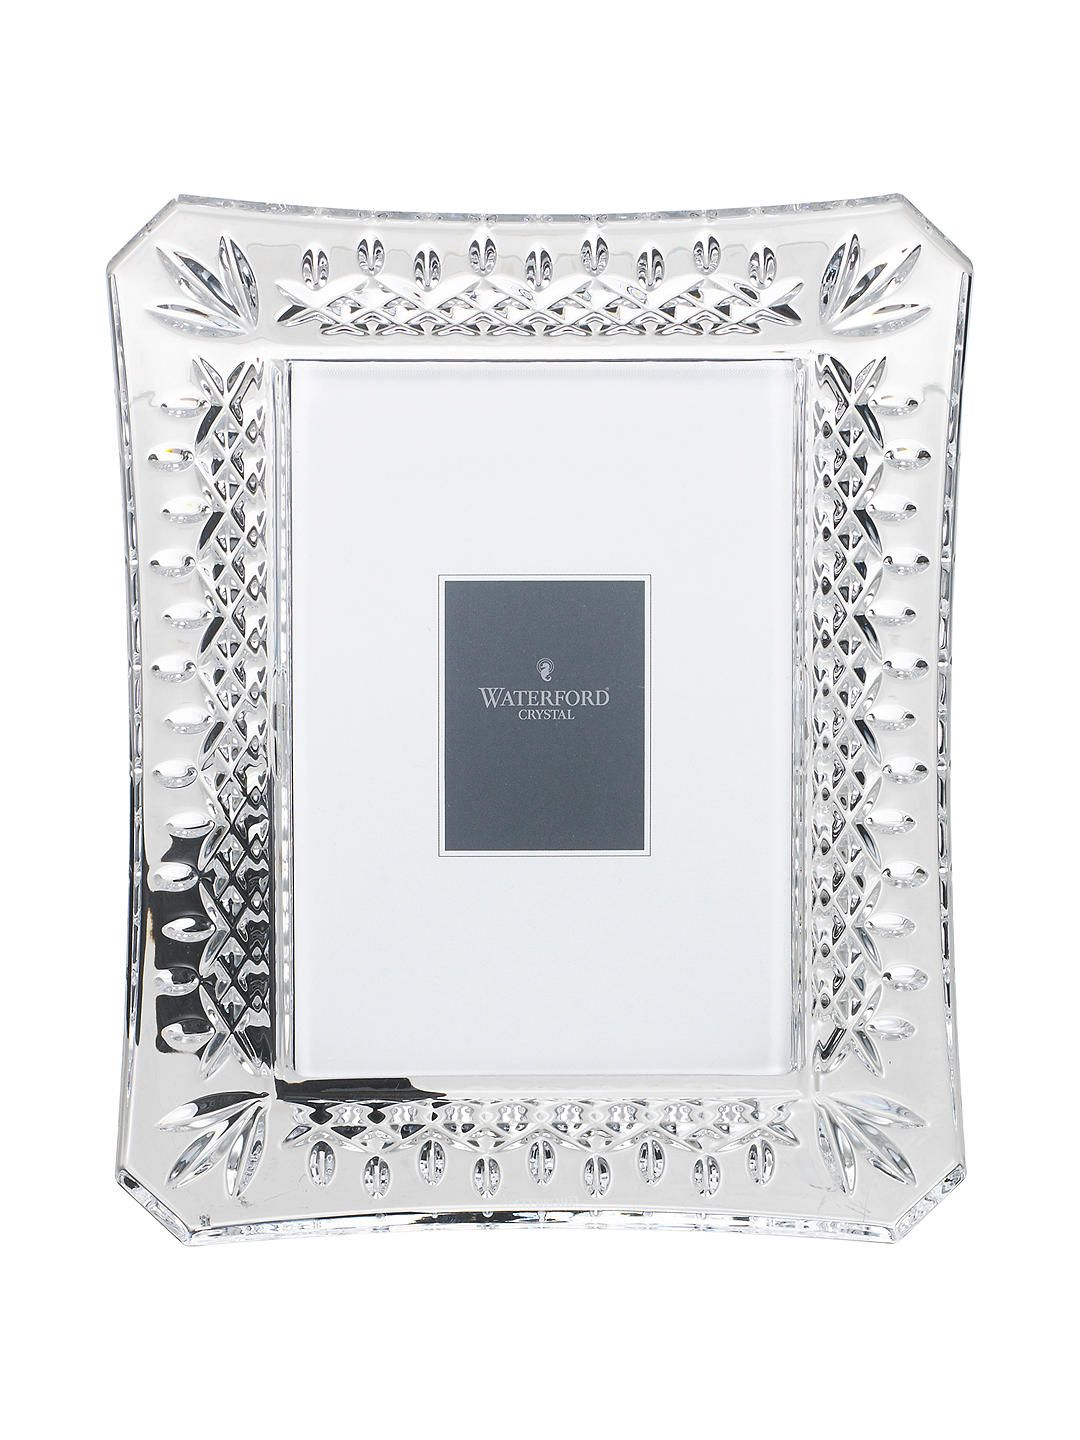 Waterford Crystal Lismore Photo Frame Waterford crystal